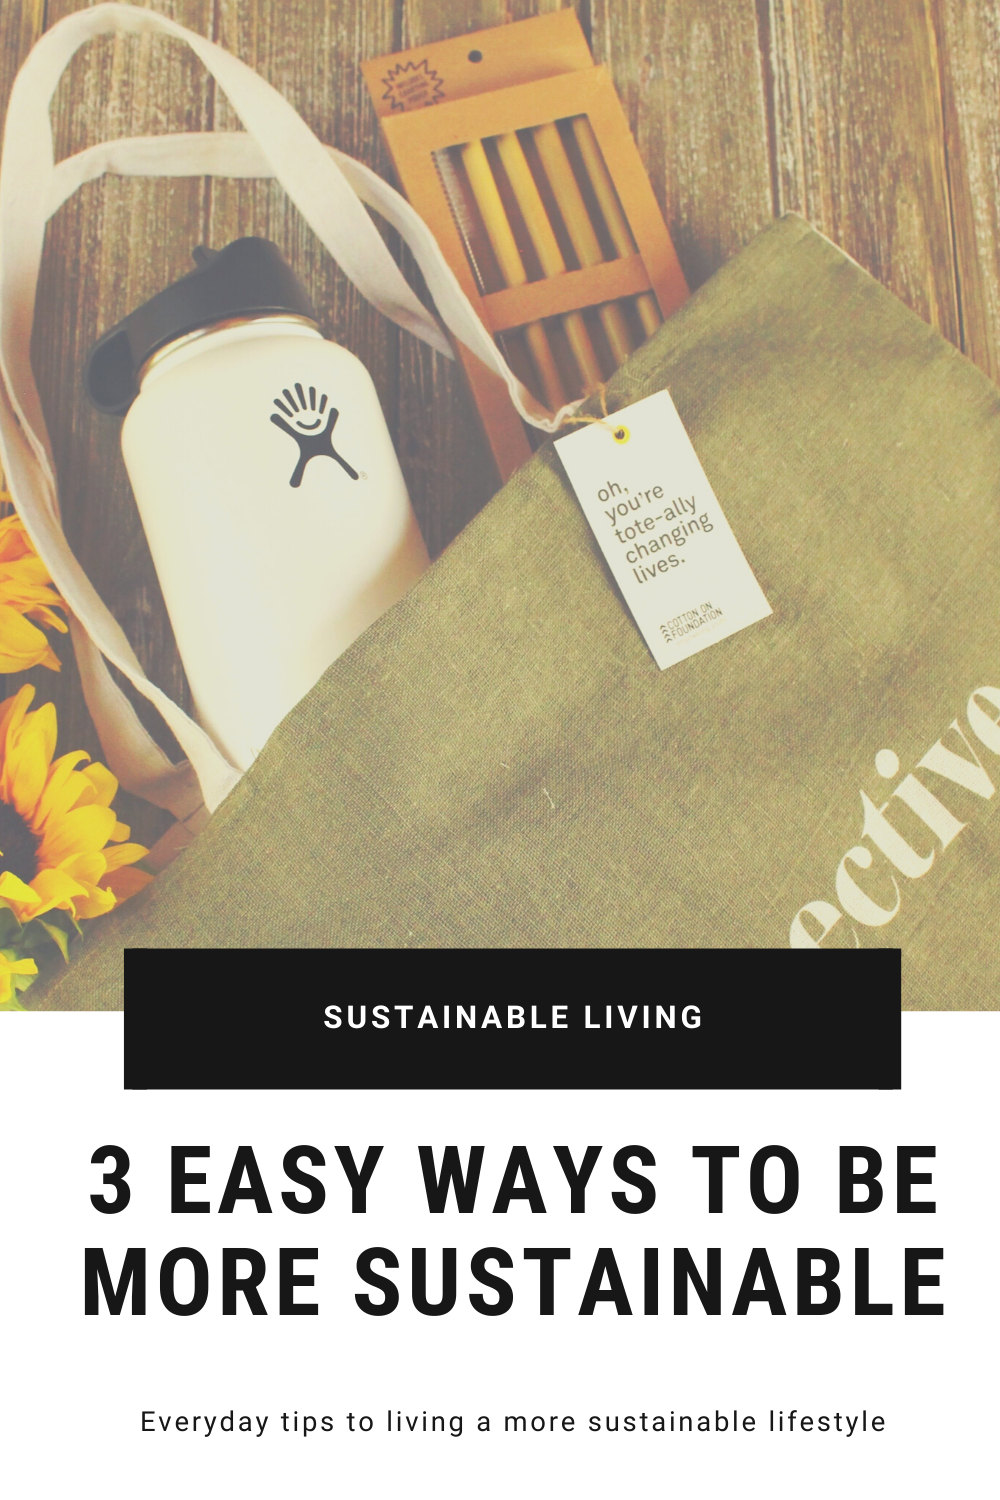 Tips for Living More Sustainably